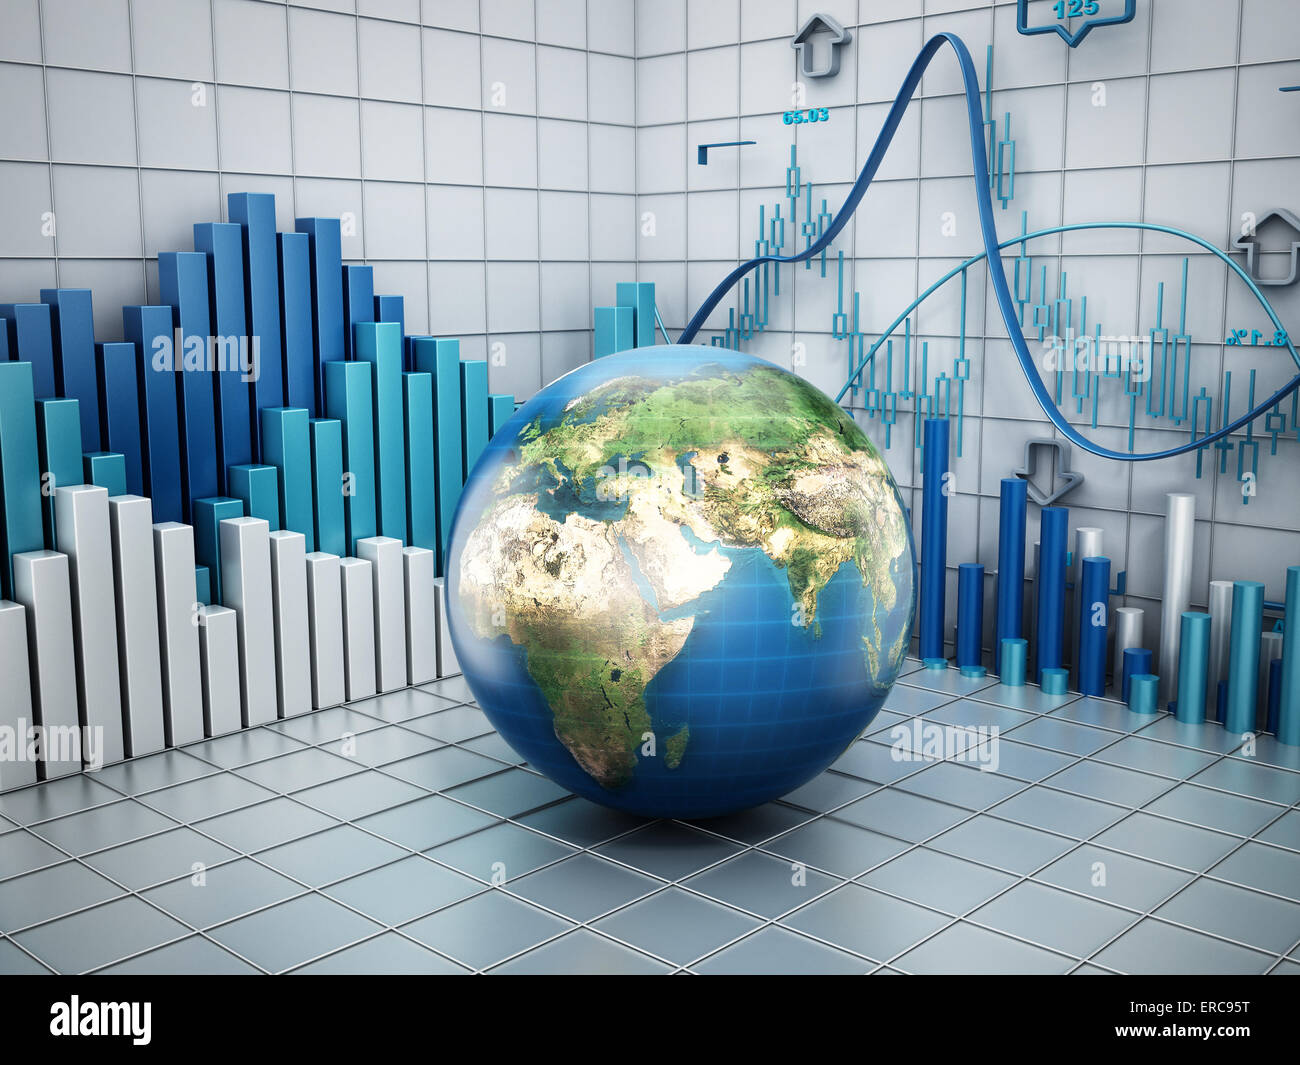 Concept global finance Photo Stock